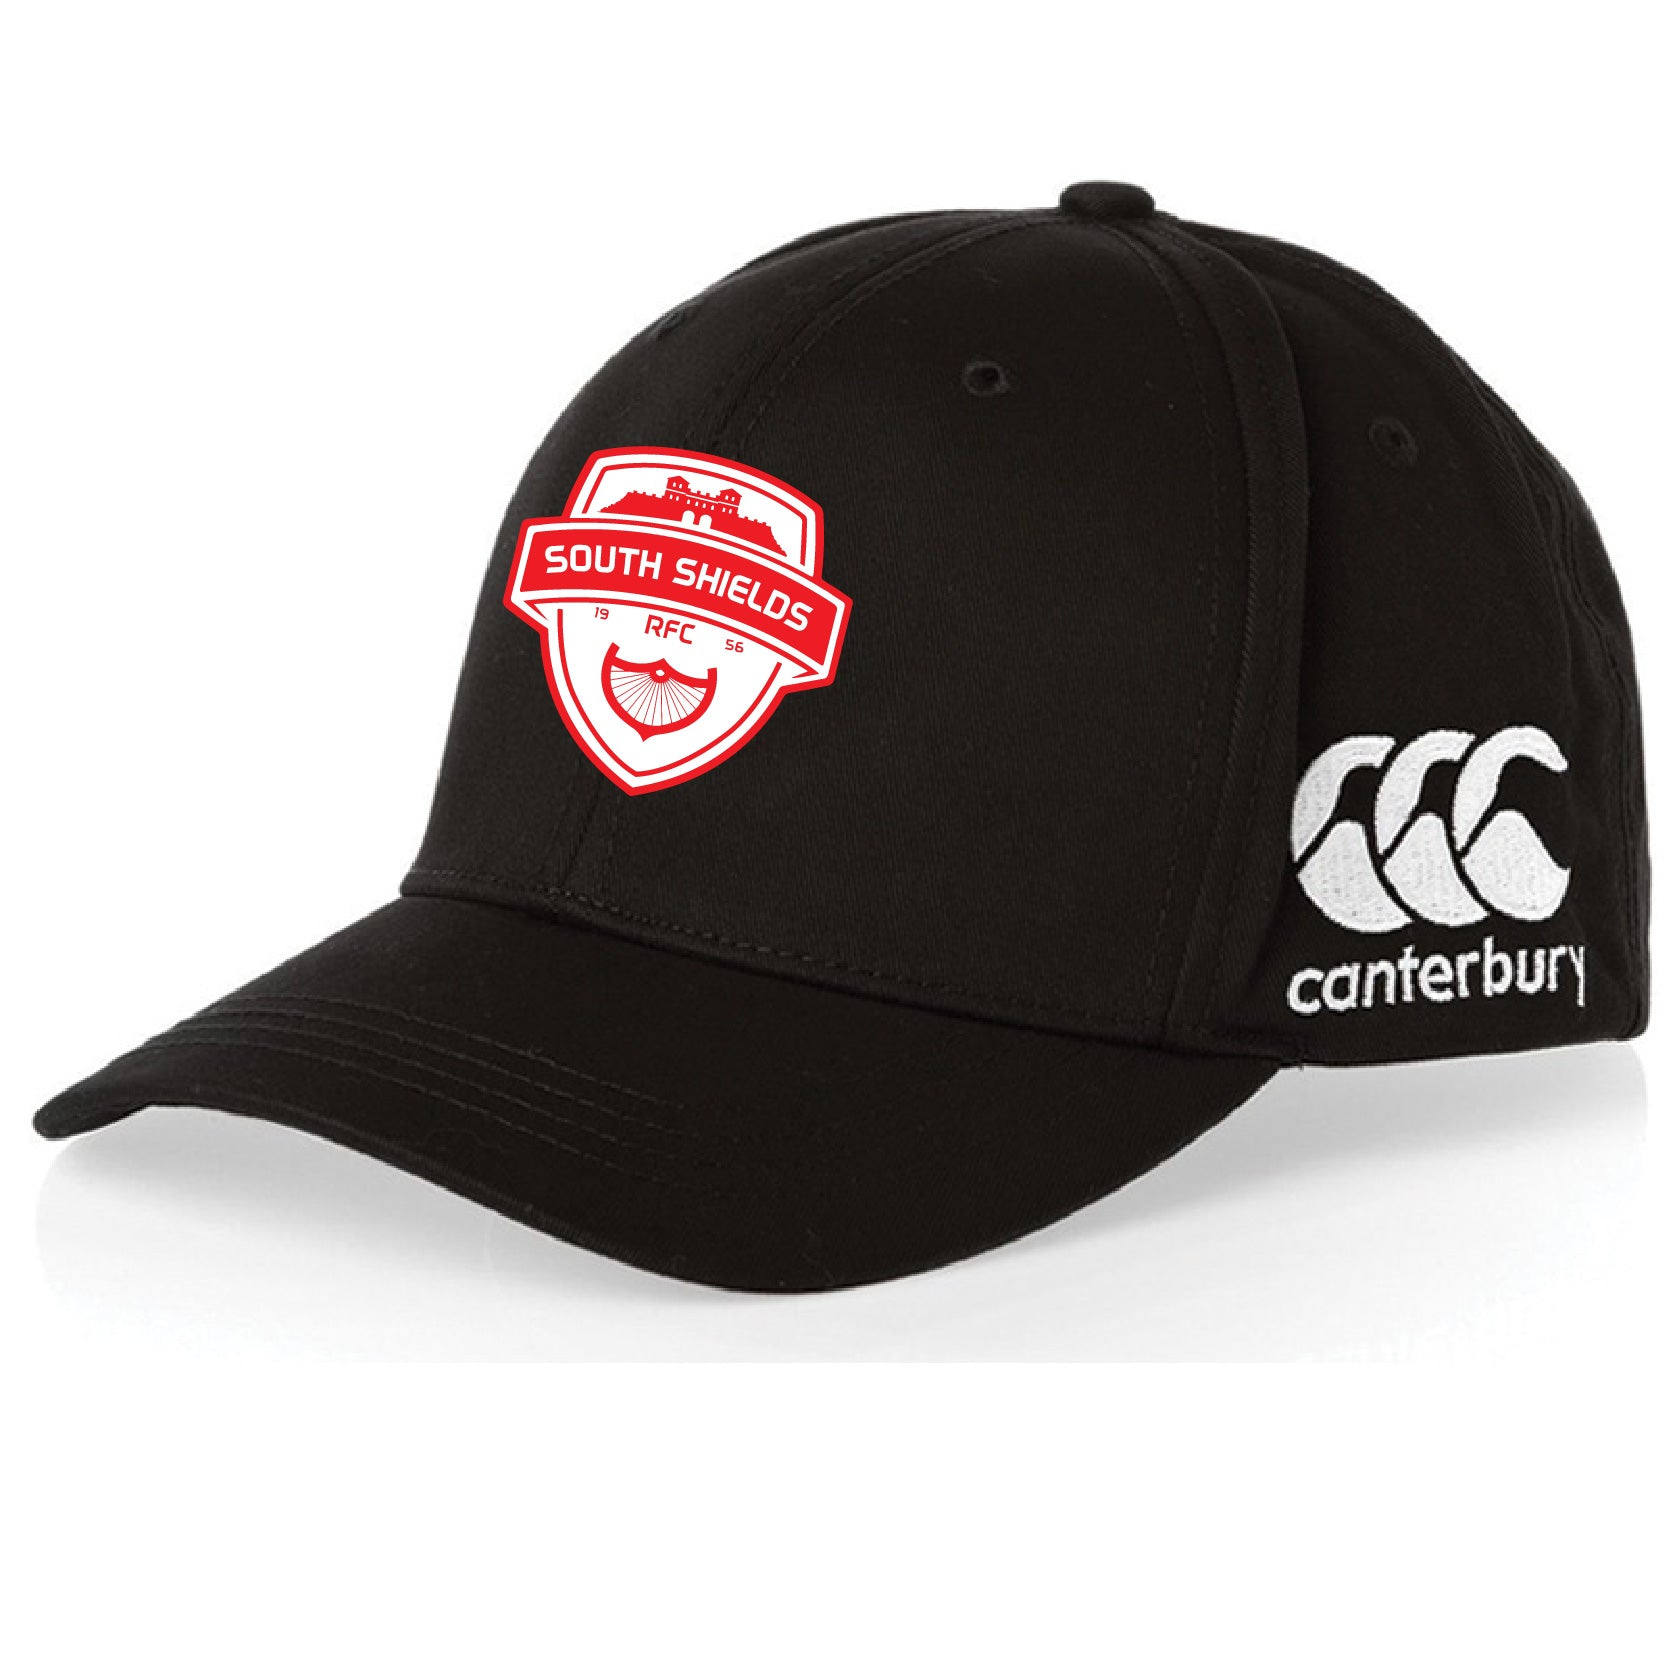 South Shields RFC CCC Baseball Cap